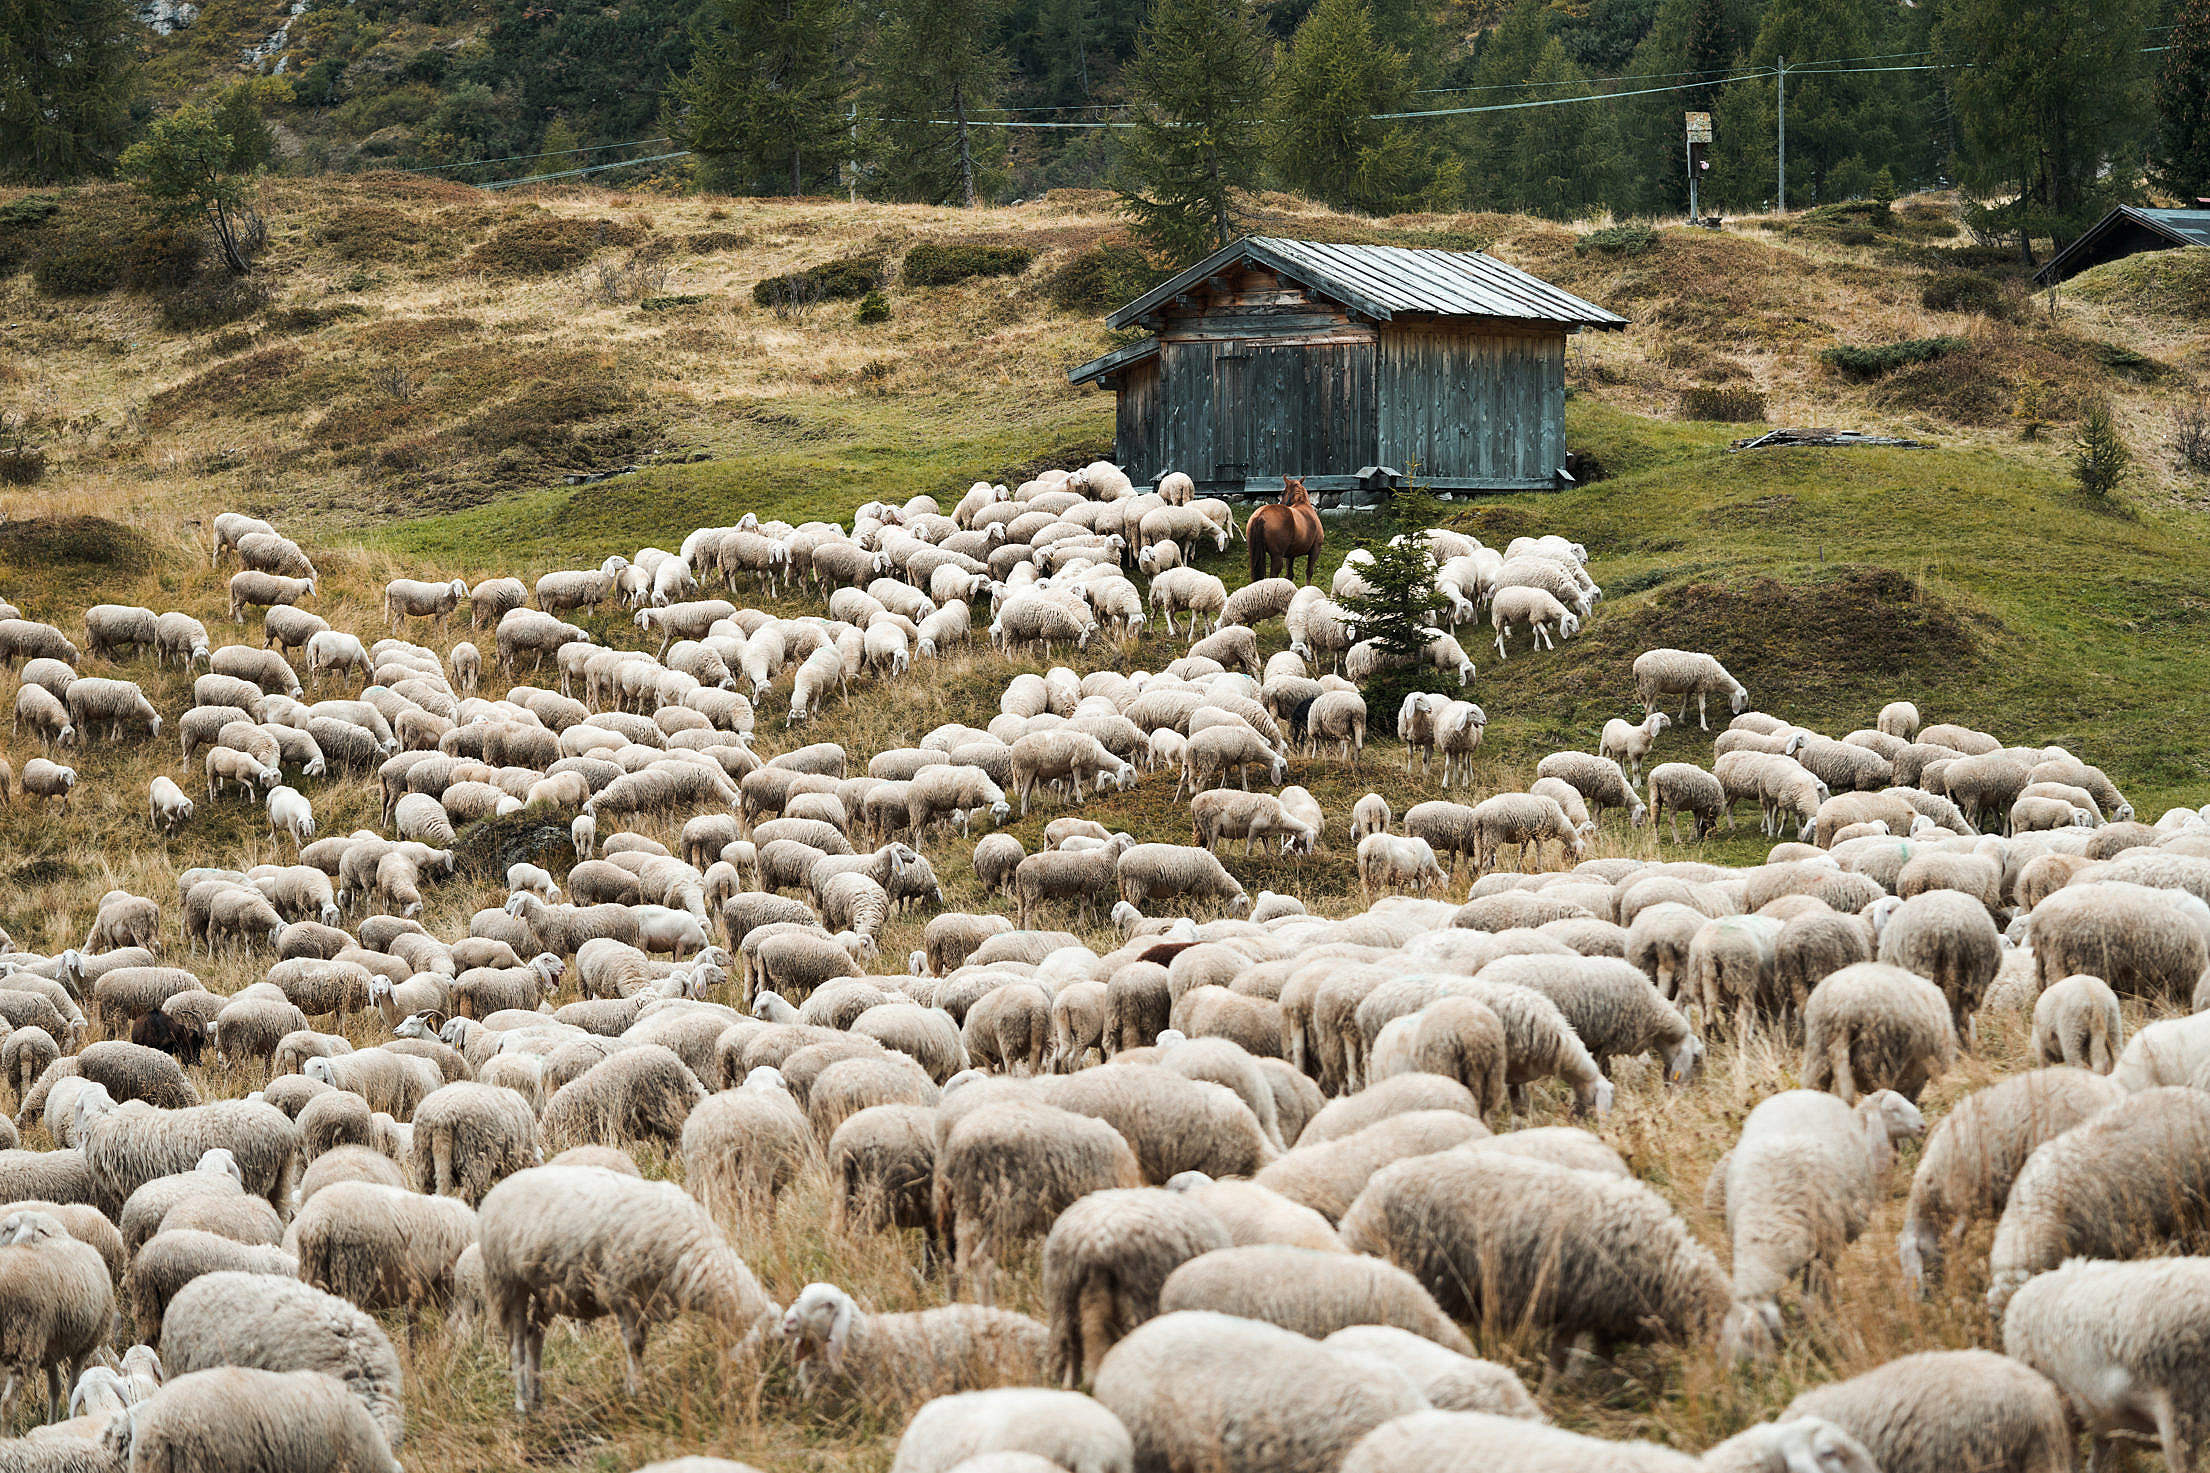 Flock of Sheep in the Mountain Pasture Free Stock Photo